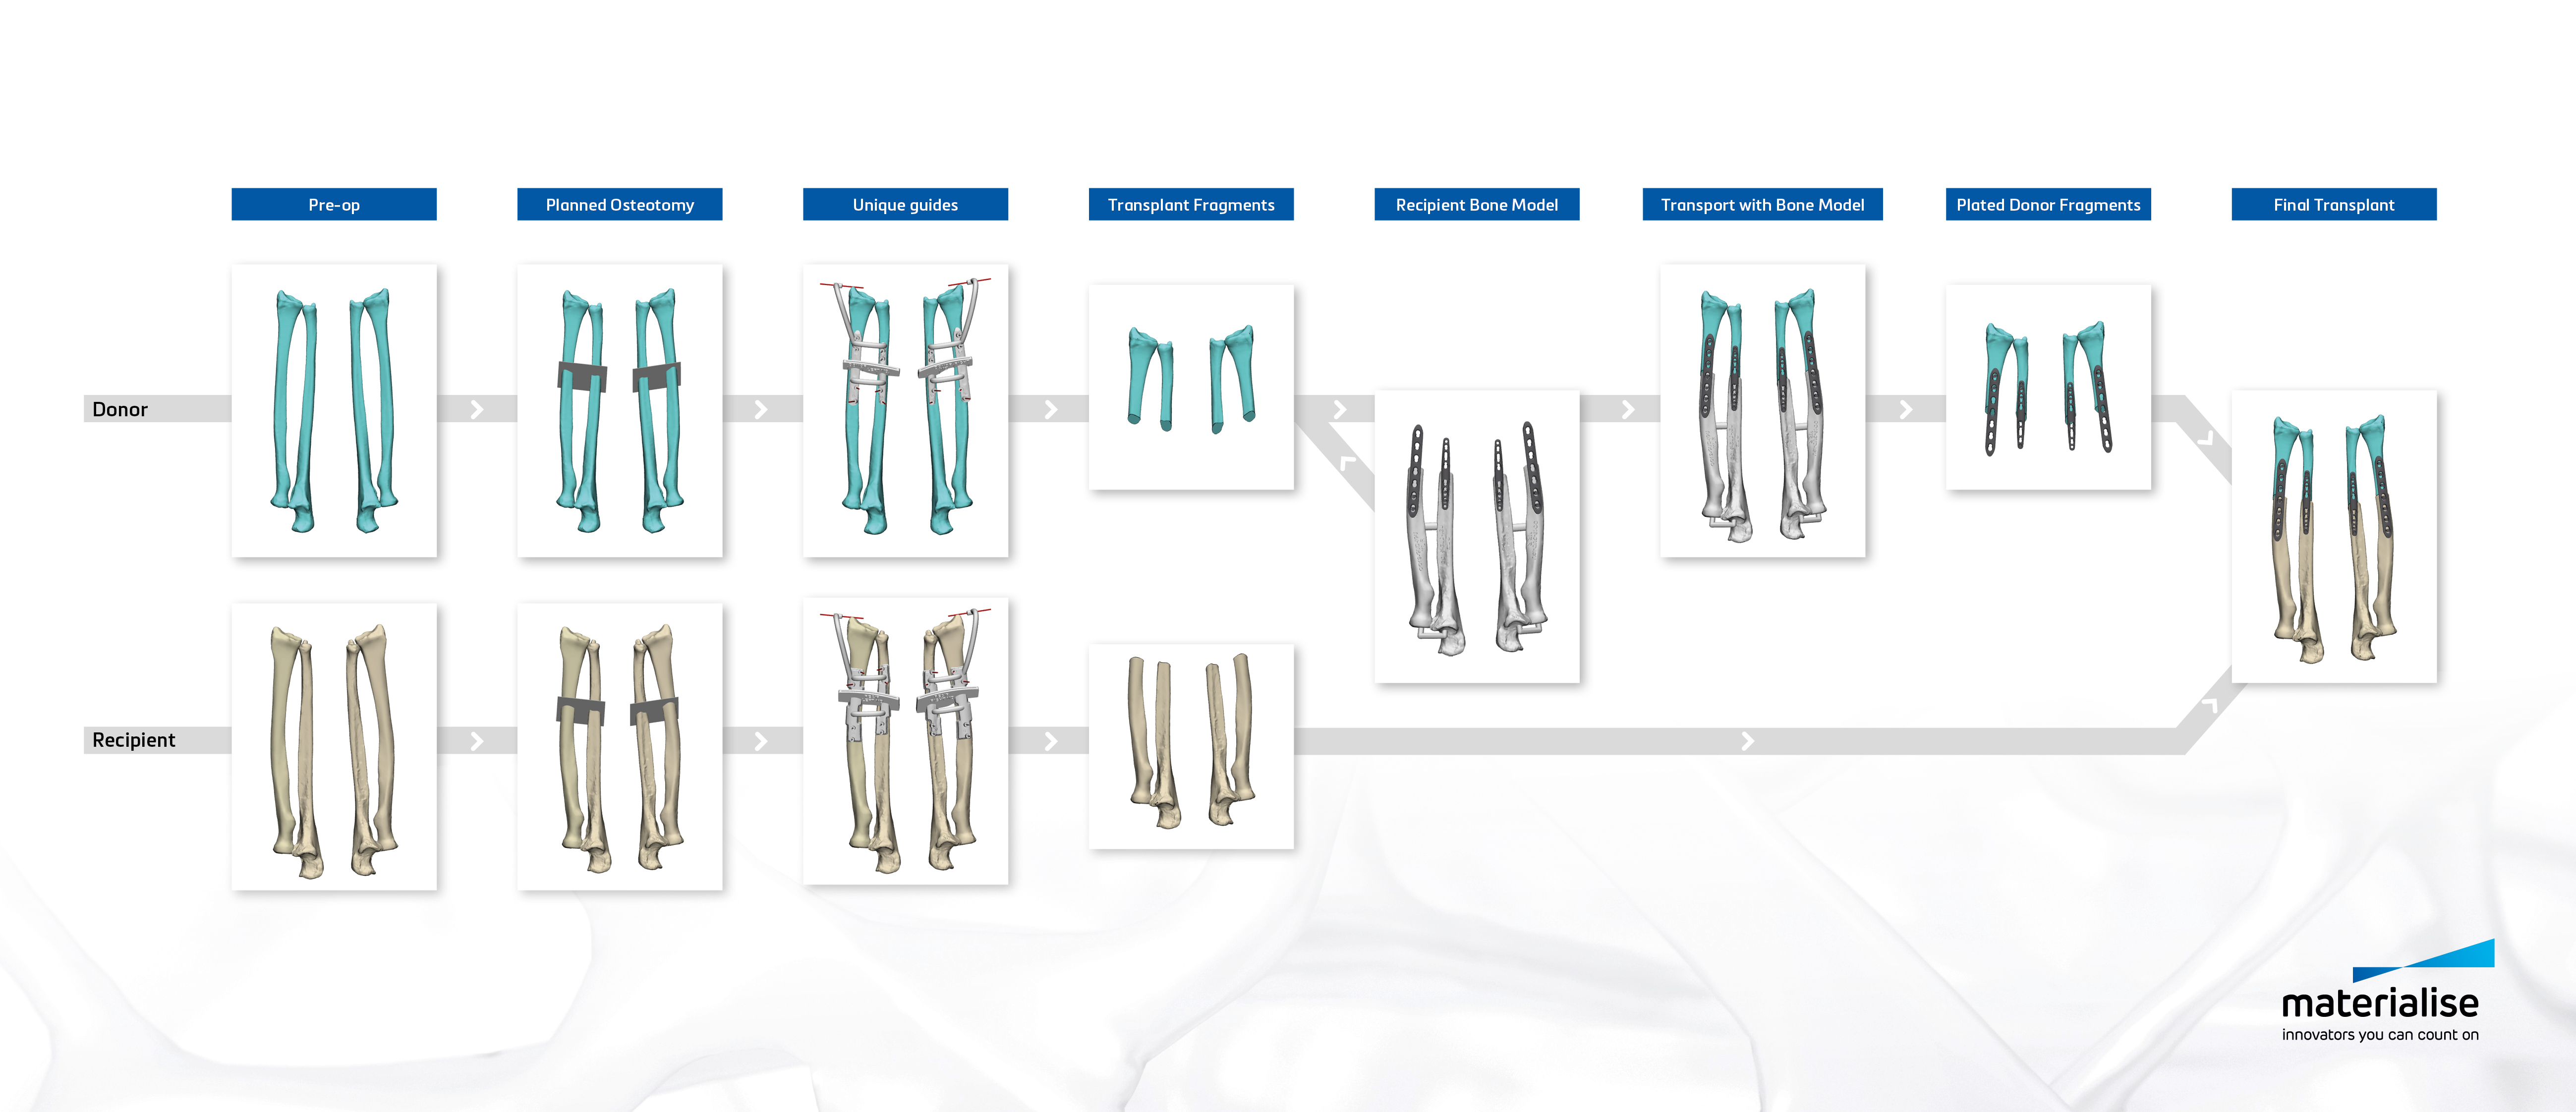 Image-based planning and medical 3D printing have completely revolutionized personalized patient care by providing surgeons with detailed insights and an additional level of confidence before entering the operation room.